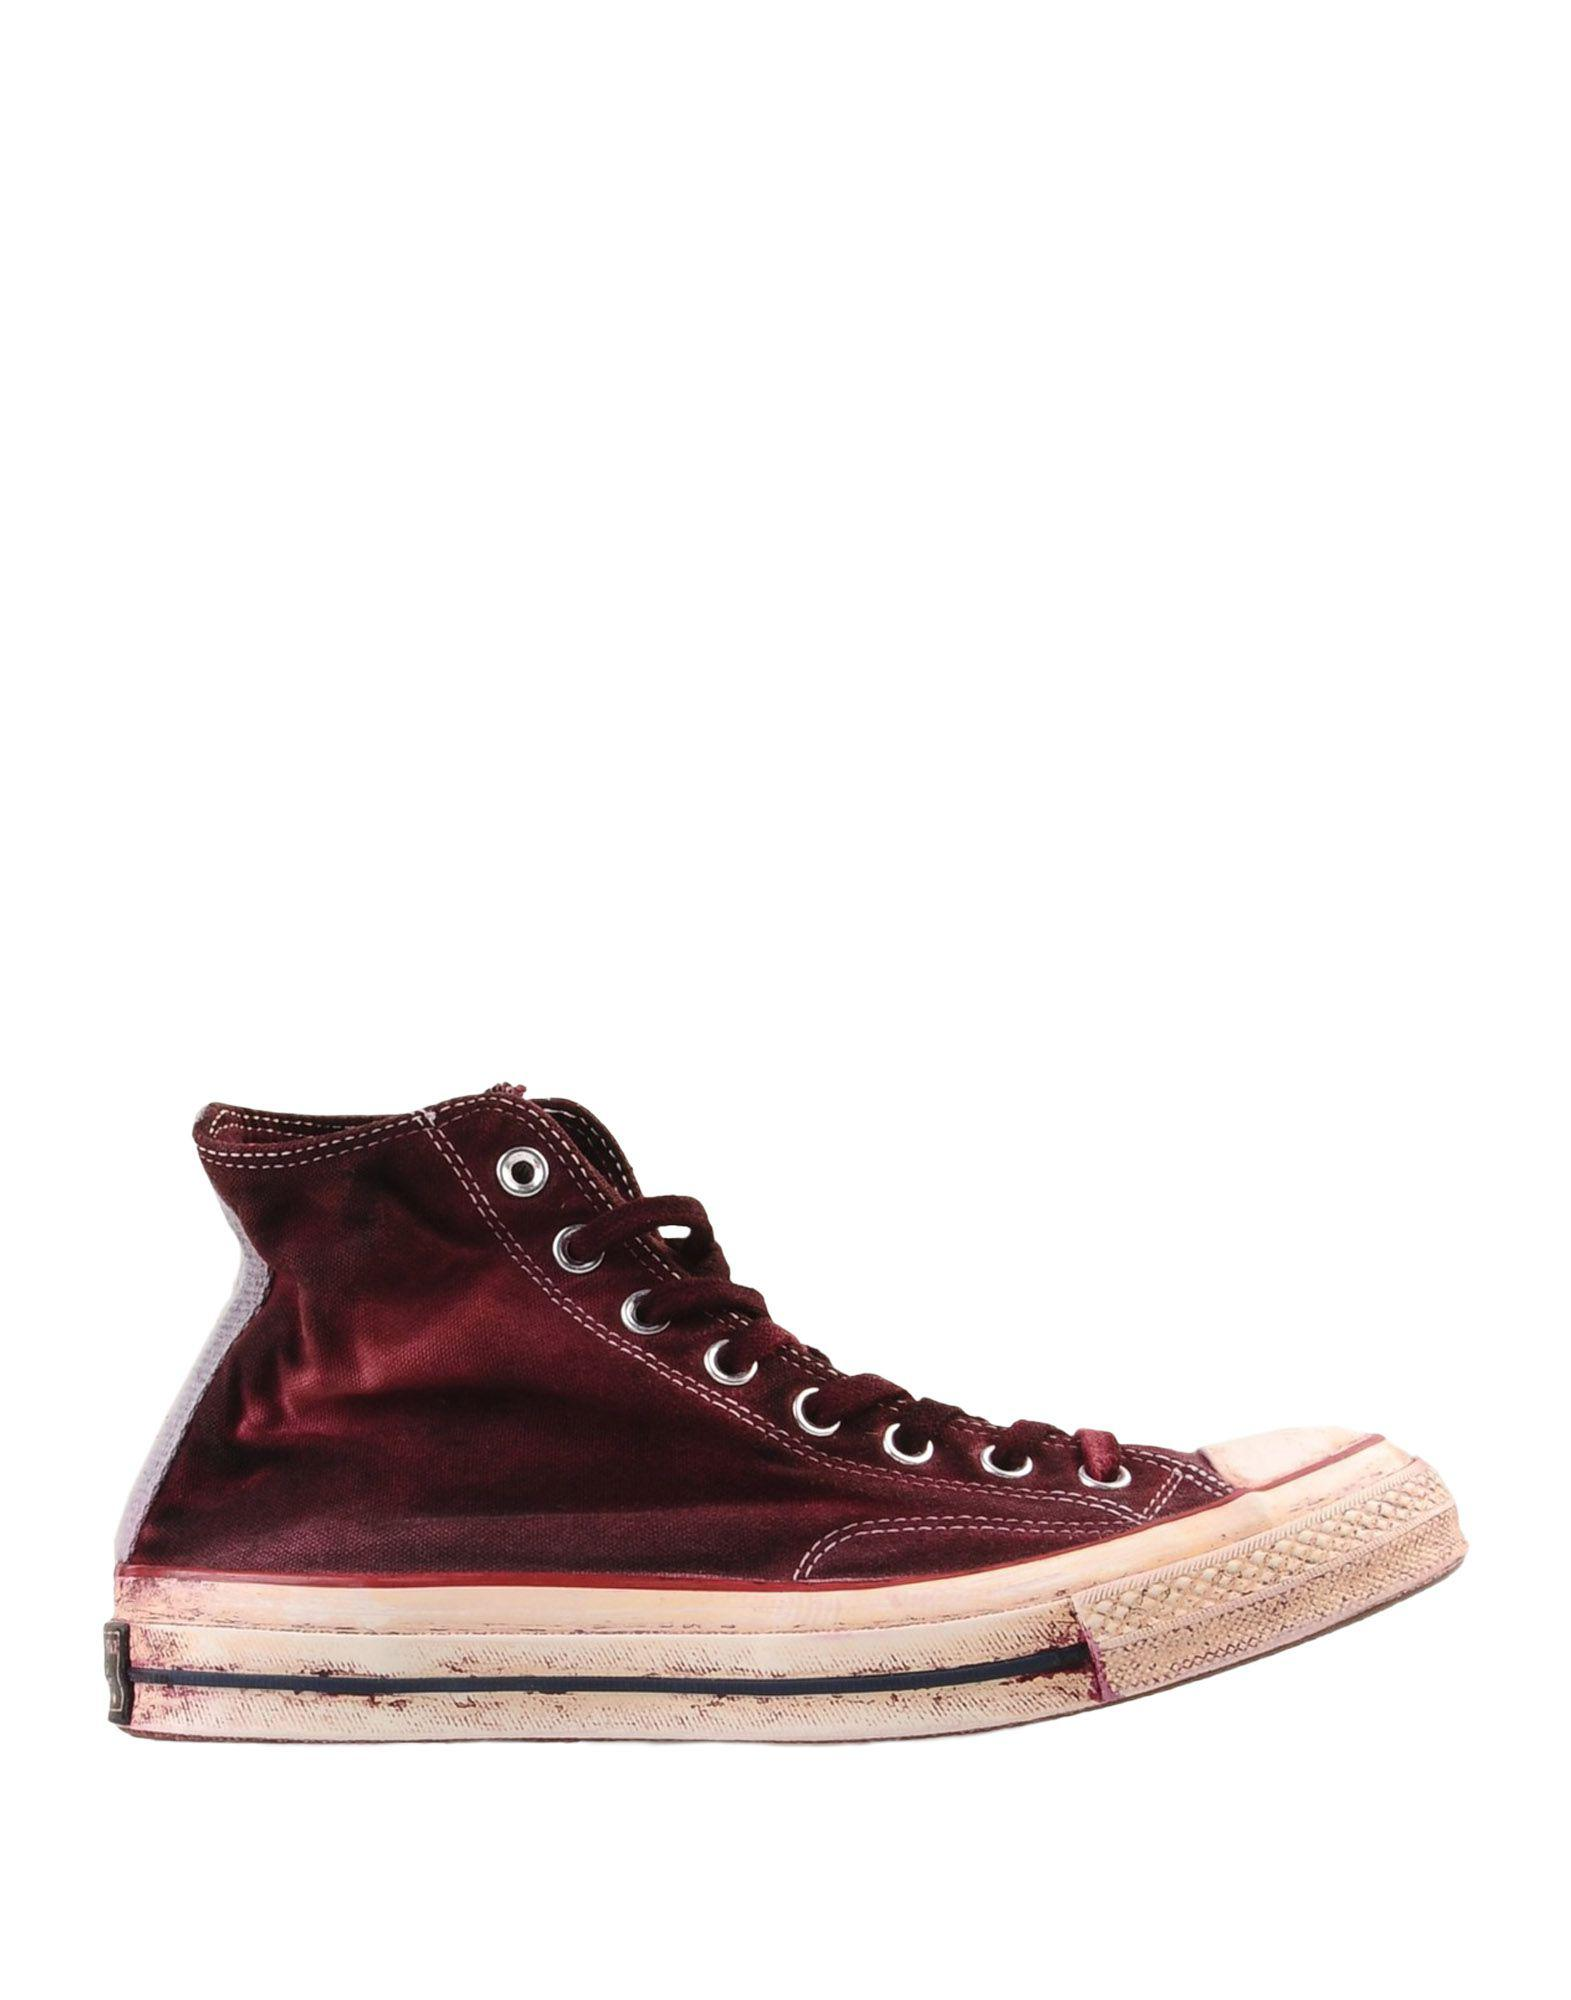 690fdb3463c2 Converse High-tops   Sneakers in Purple for Men - Lyst